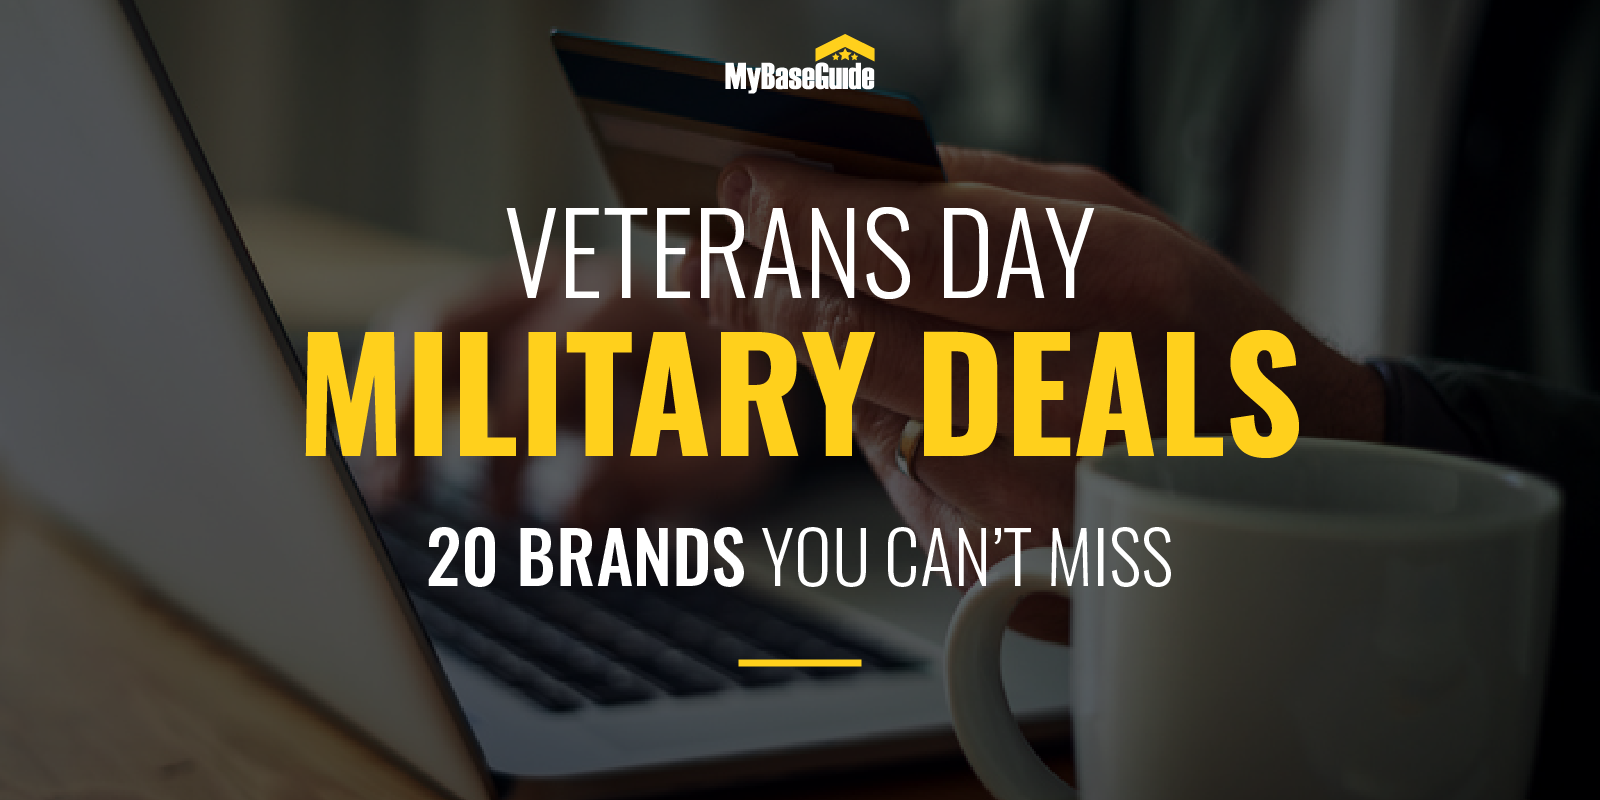 Veterans Day Military Deals: 20 Brands You Can't Miss